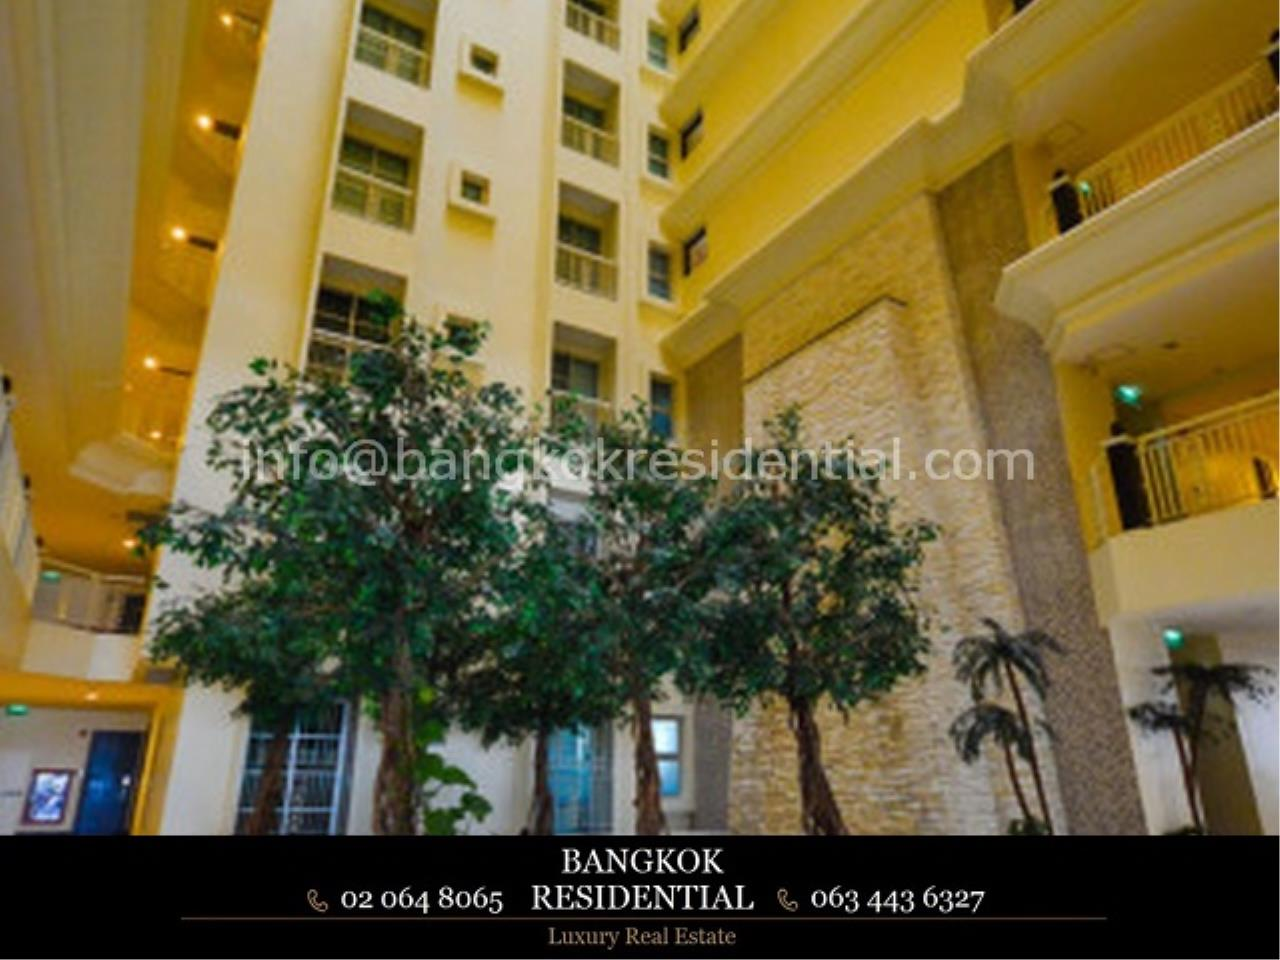 Bangkok Residential Agency's 3BR Citi Smart For Rent (BR5921CD) 6